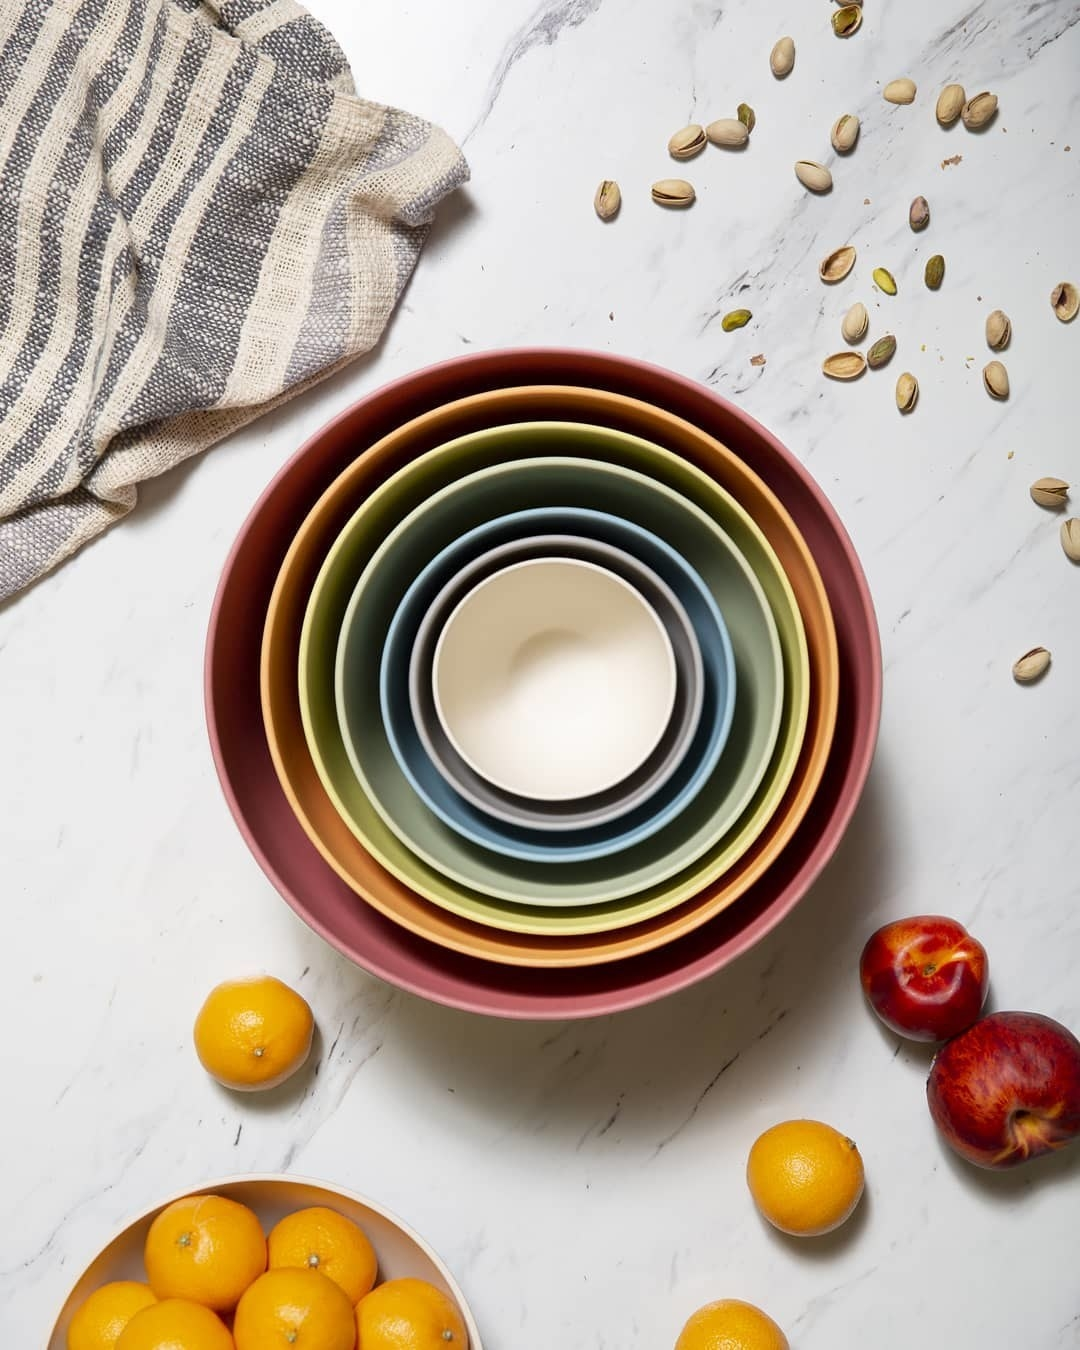 A flatlay of the bowls nested into each other on a marble counter surrounded by fruit